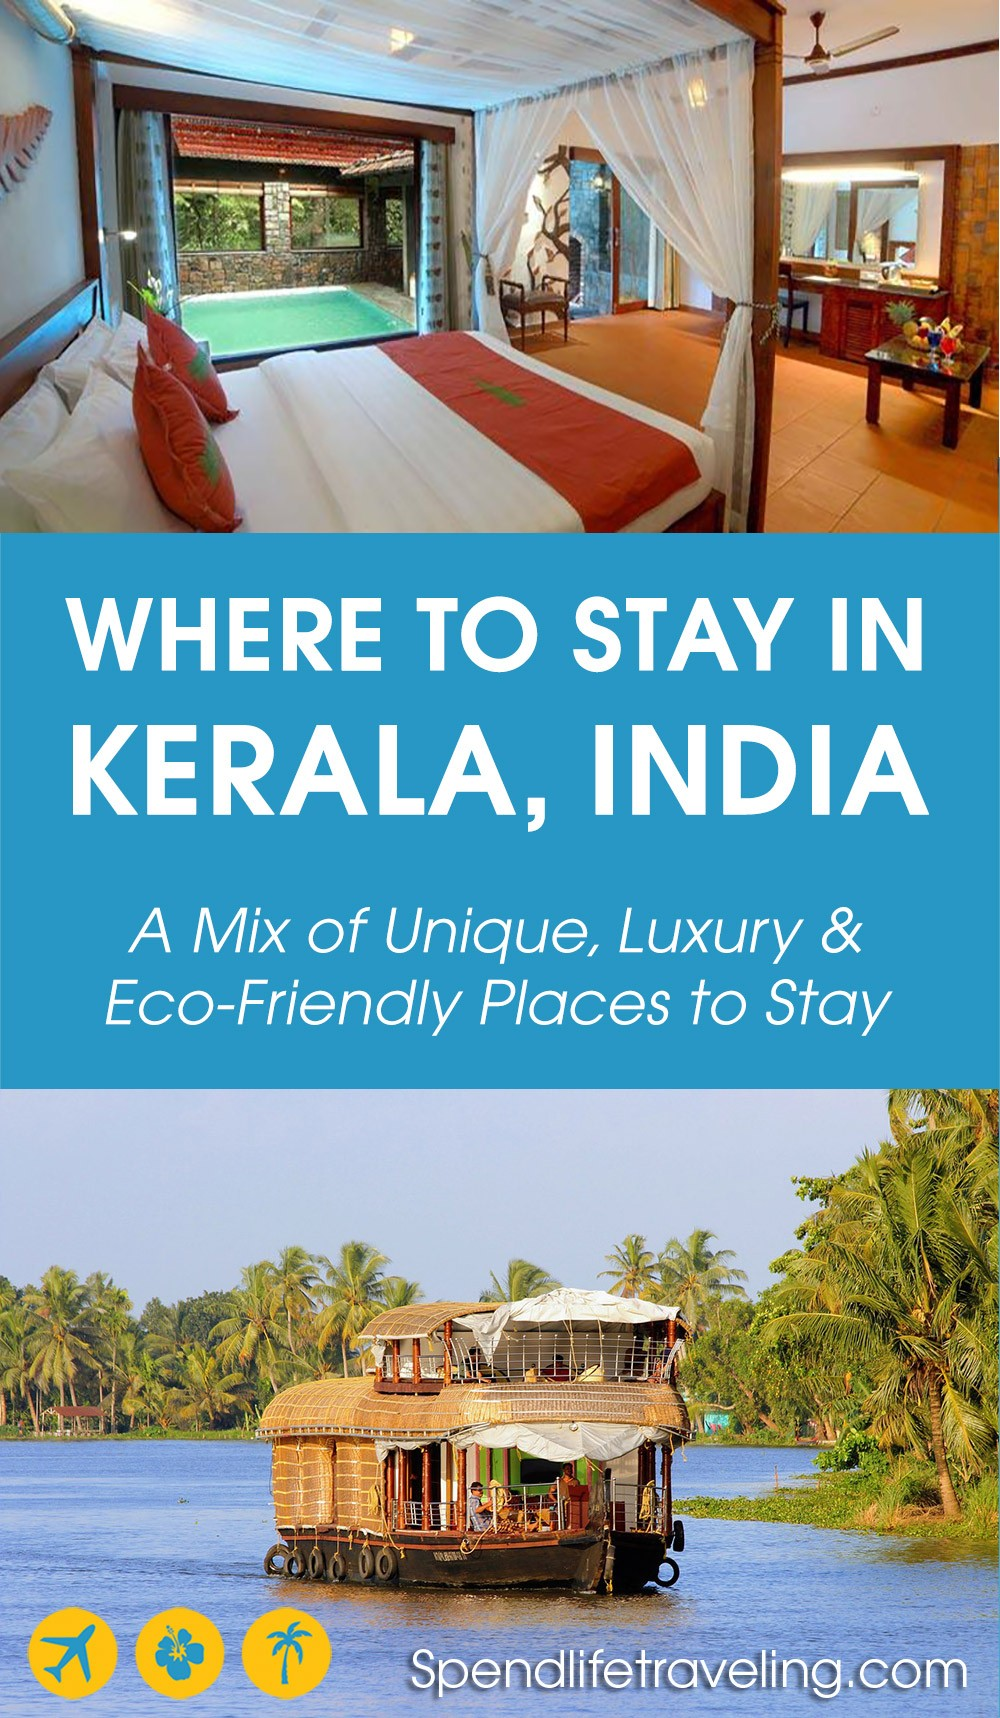 an article to help you find the best place to stay in Kerala